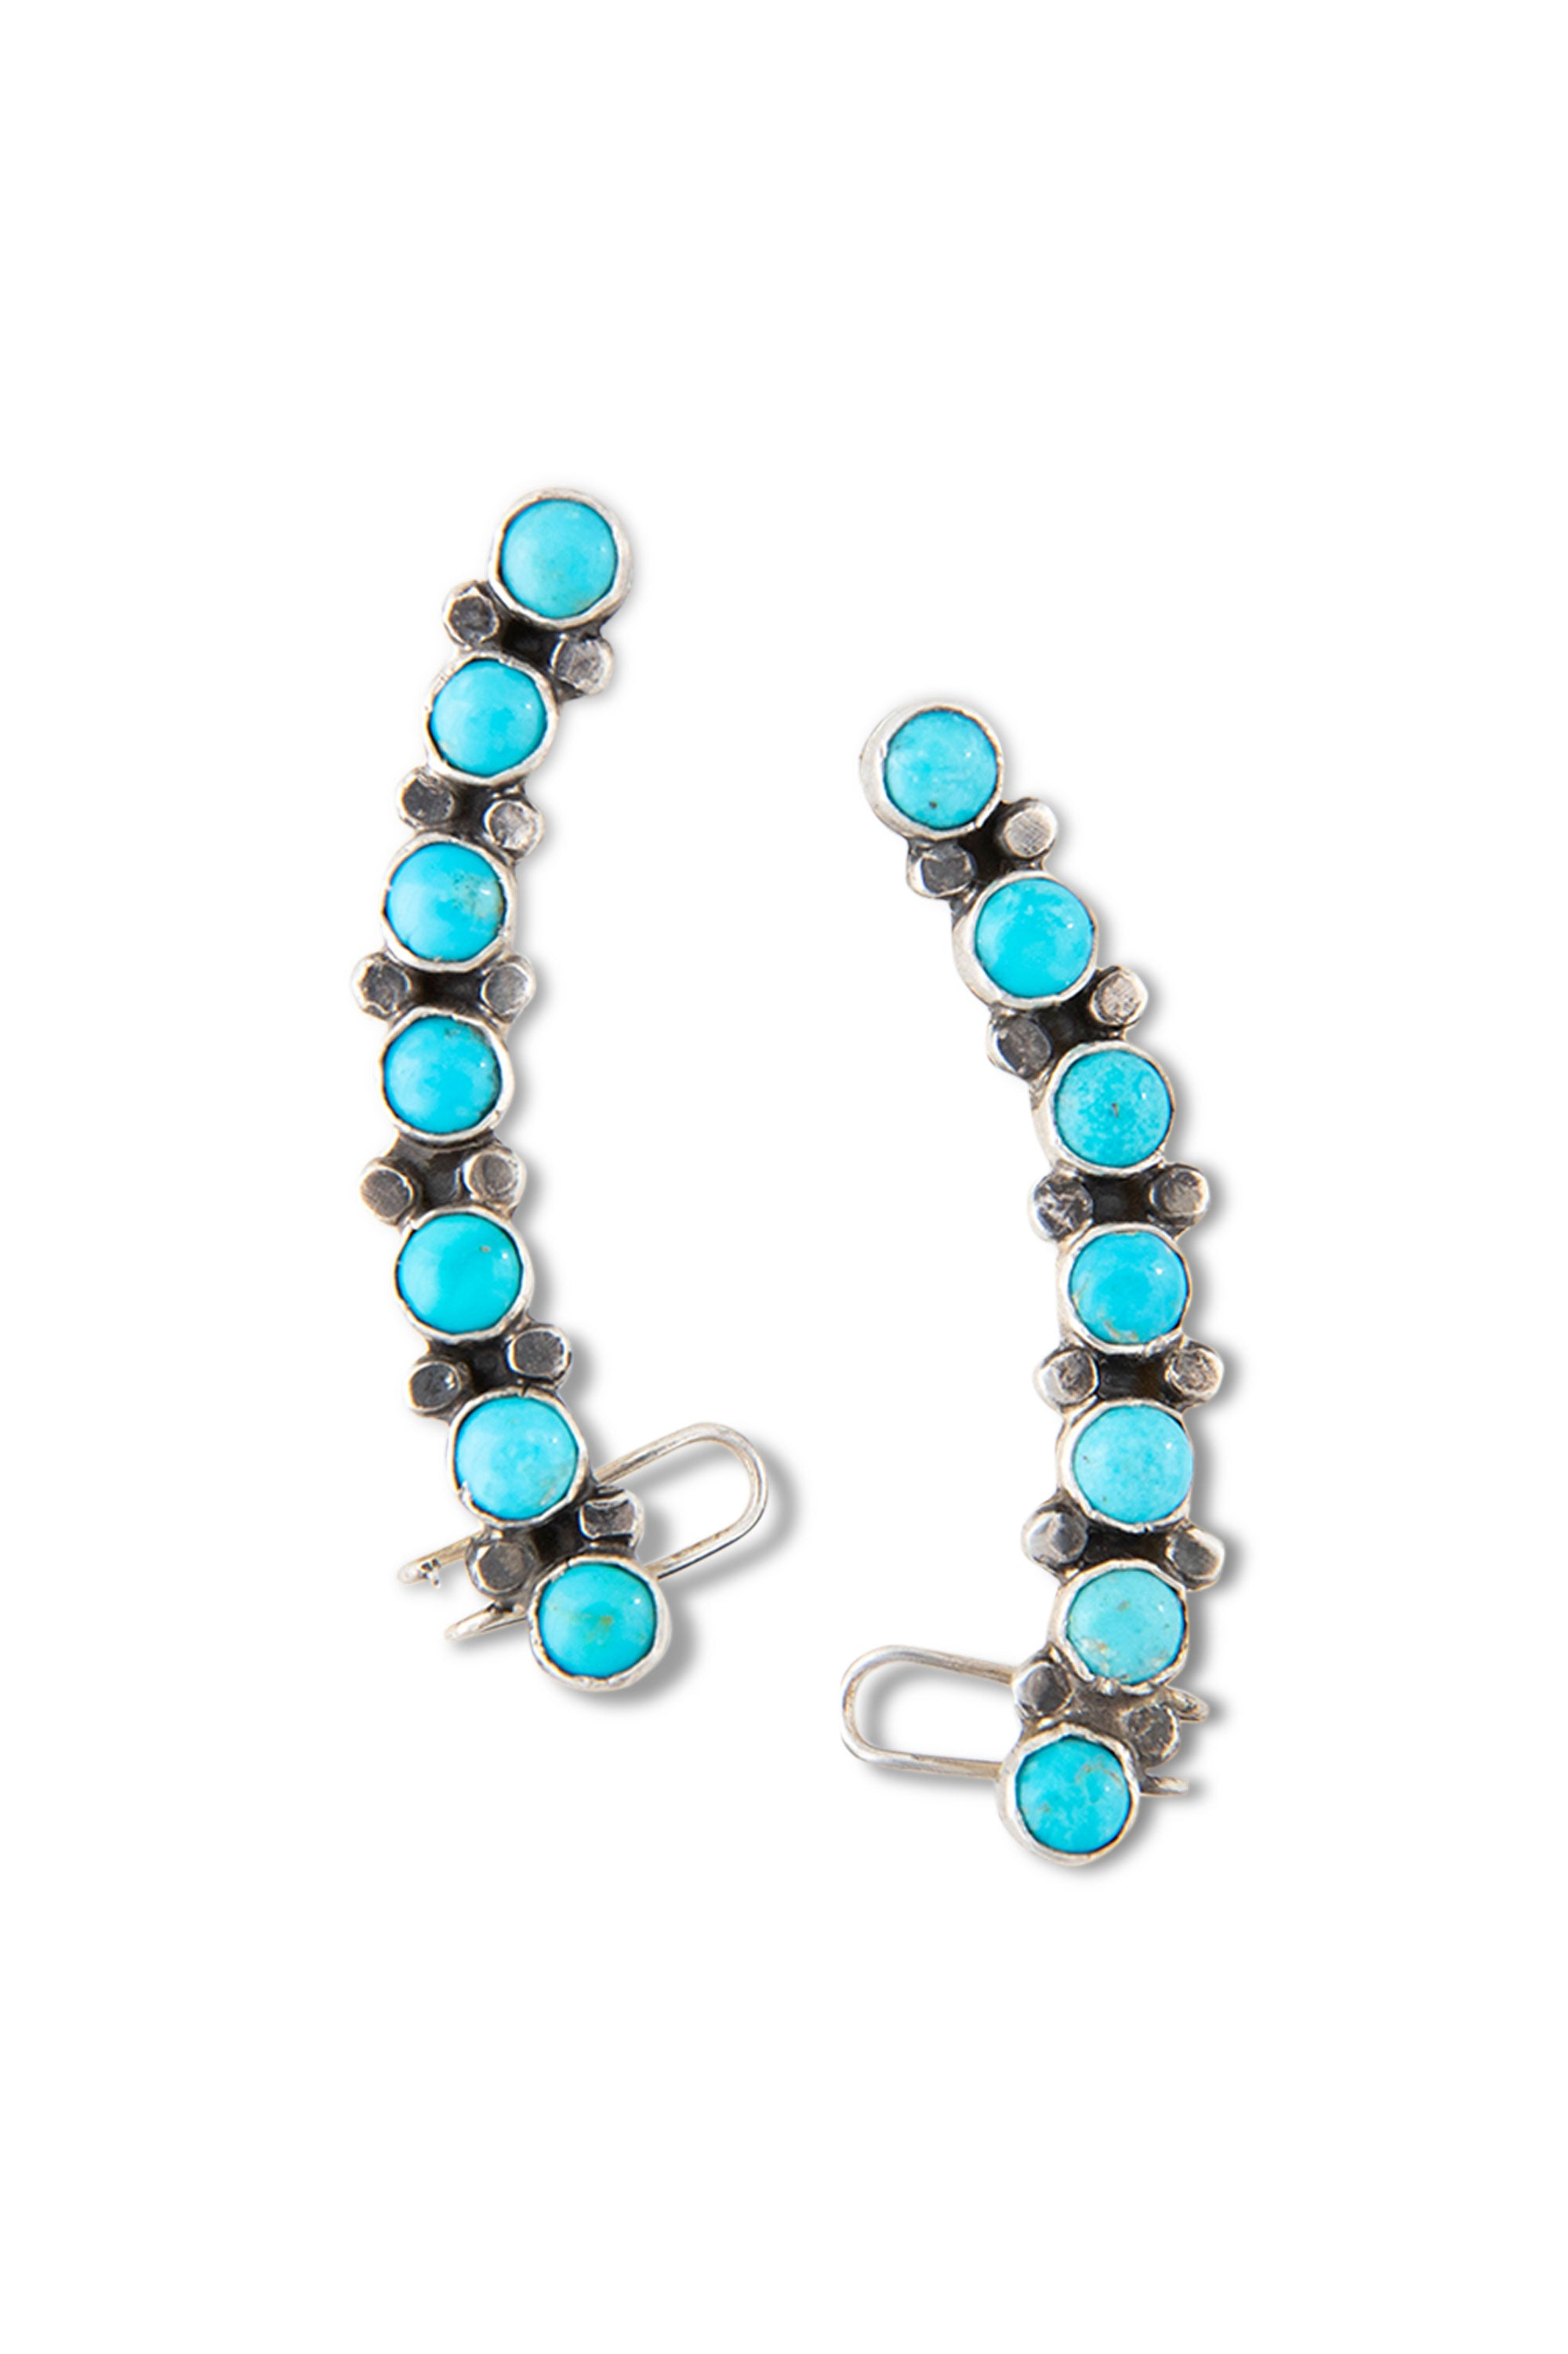 Earrings, Cuff, Turquoise, 403